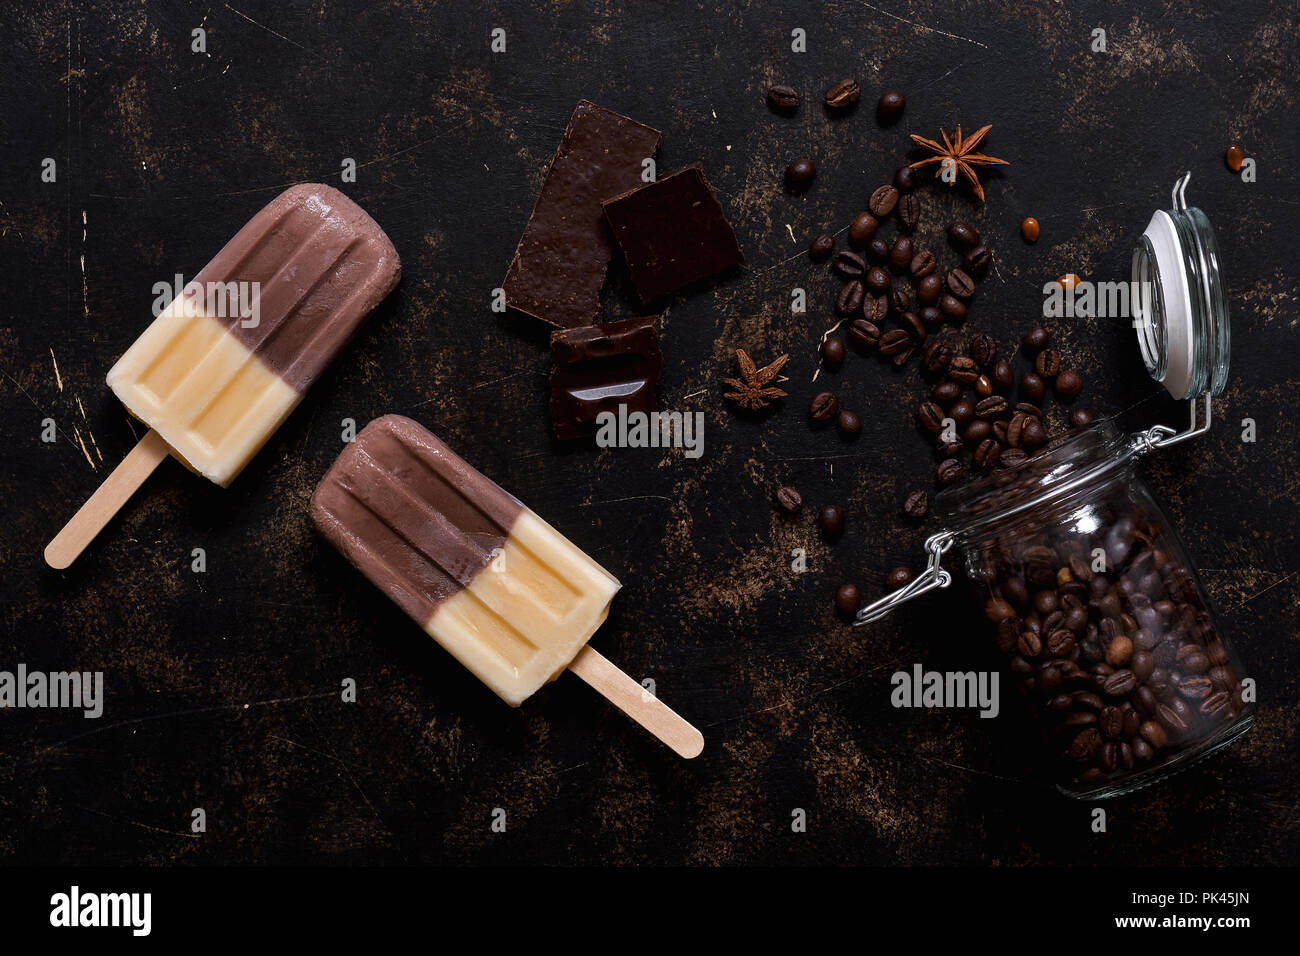 Double ice cream on a stick brown-beige. Ice cream coffee on a dark background, top view. - Stock Image